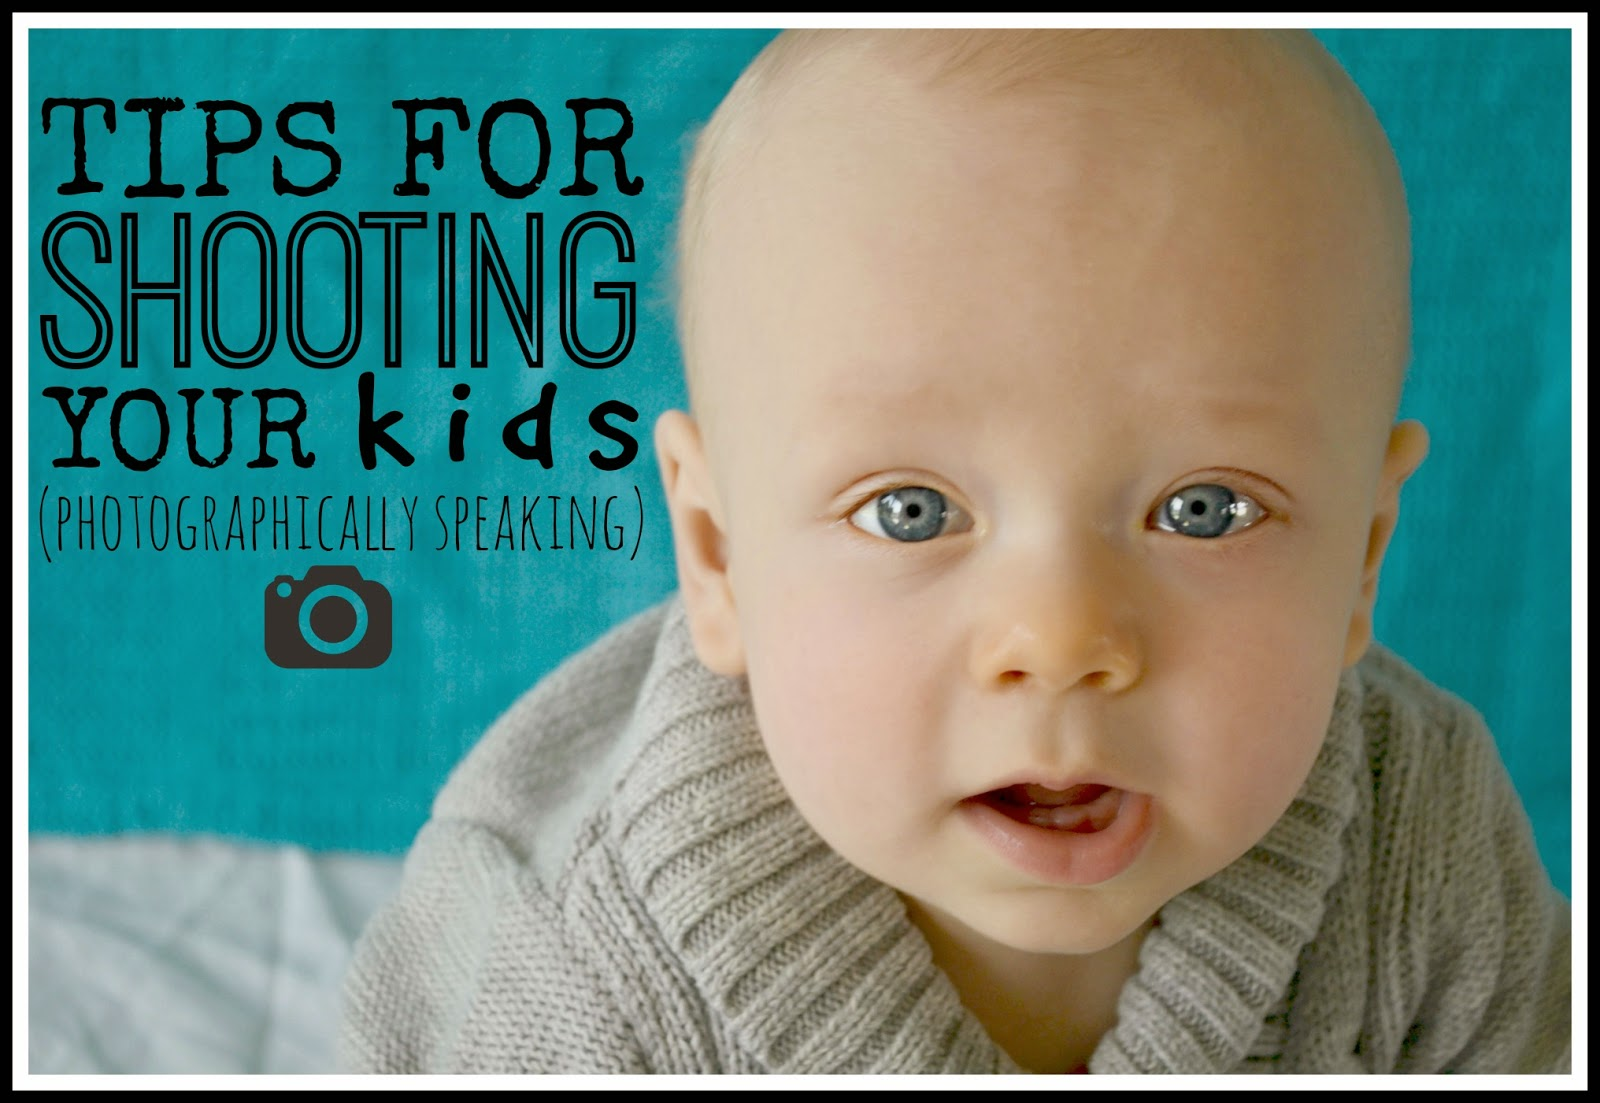 !0 Tips For Shooting Your Kids #photography #kids